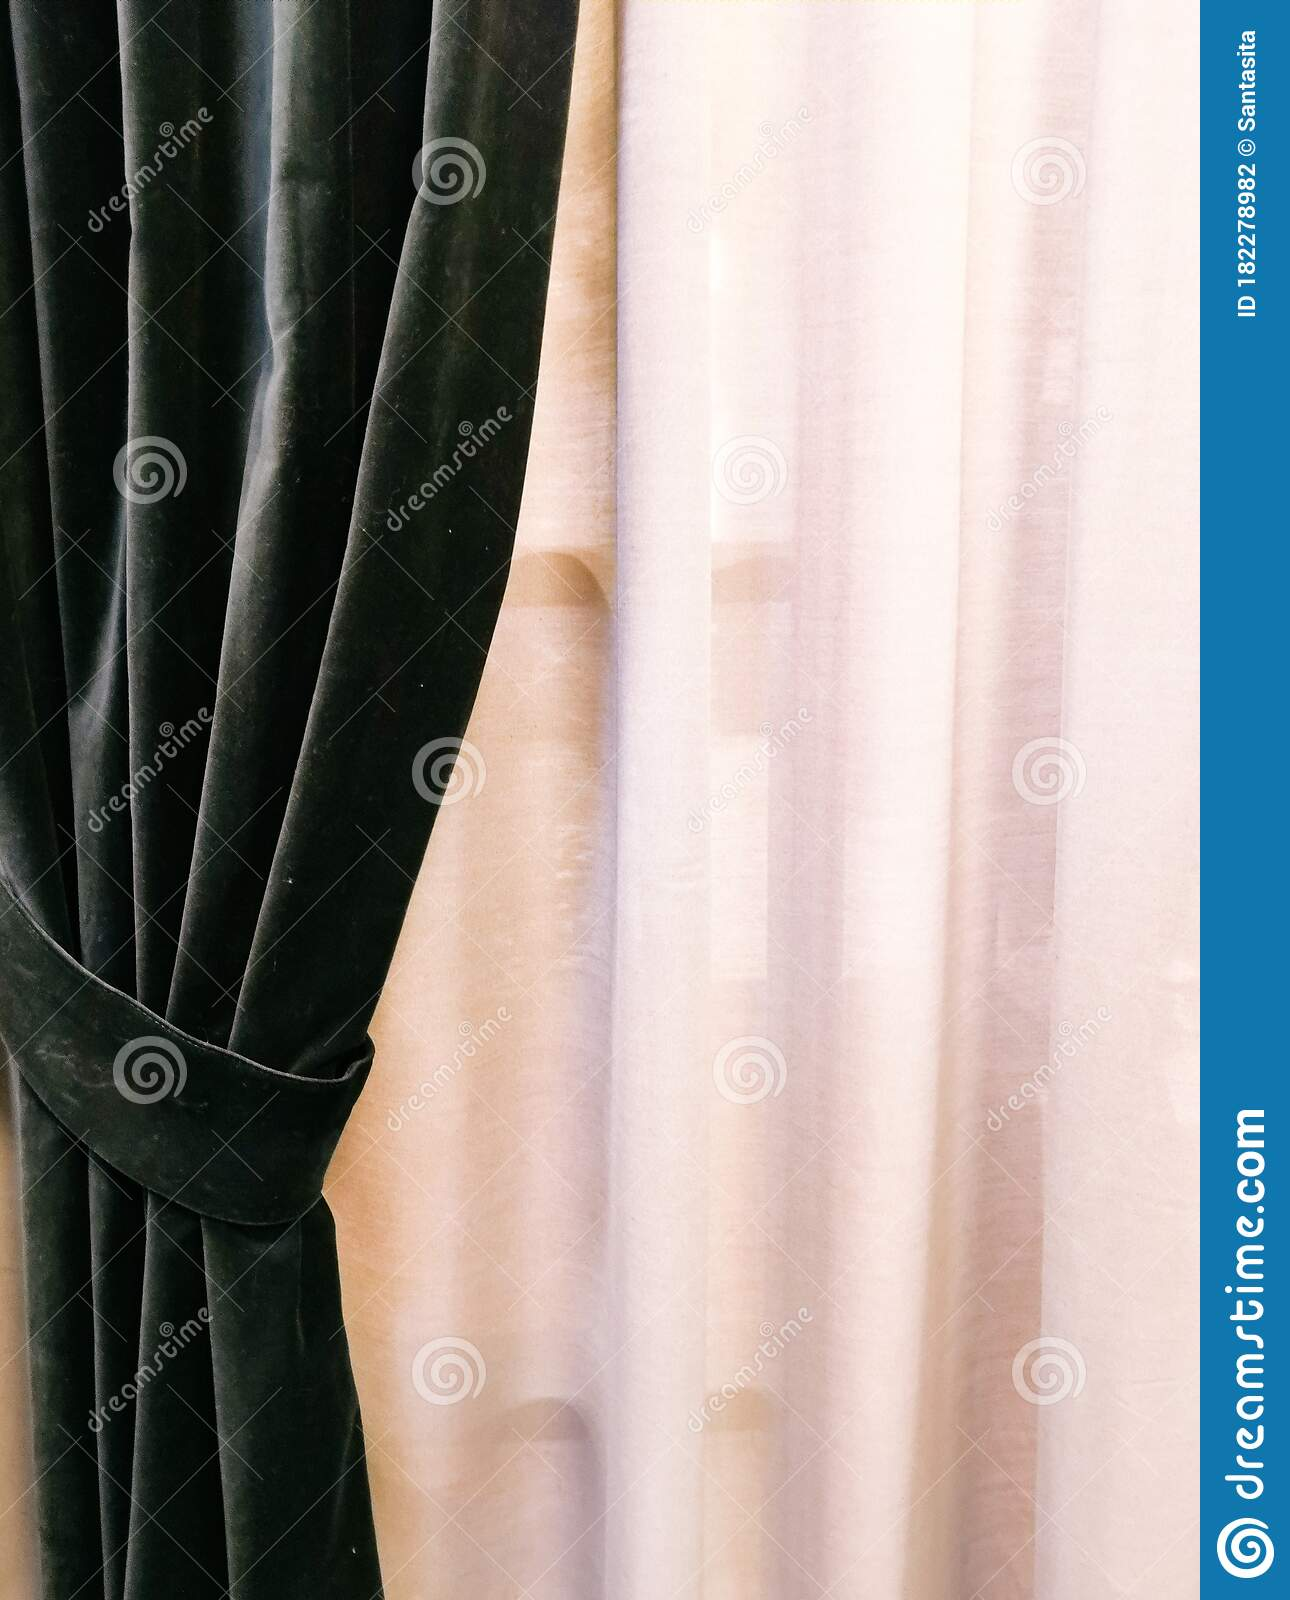 A Dark Velvet Curtain And A Light Tulle Long Dark Luxury Curtains And Tulle Curtains Sheers On A Window In The Bedroom Stock Photo Image Of Luxury Modern 182278982